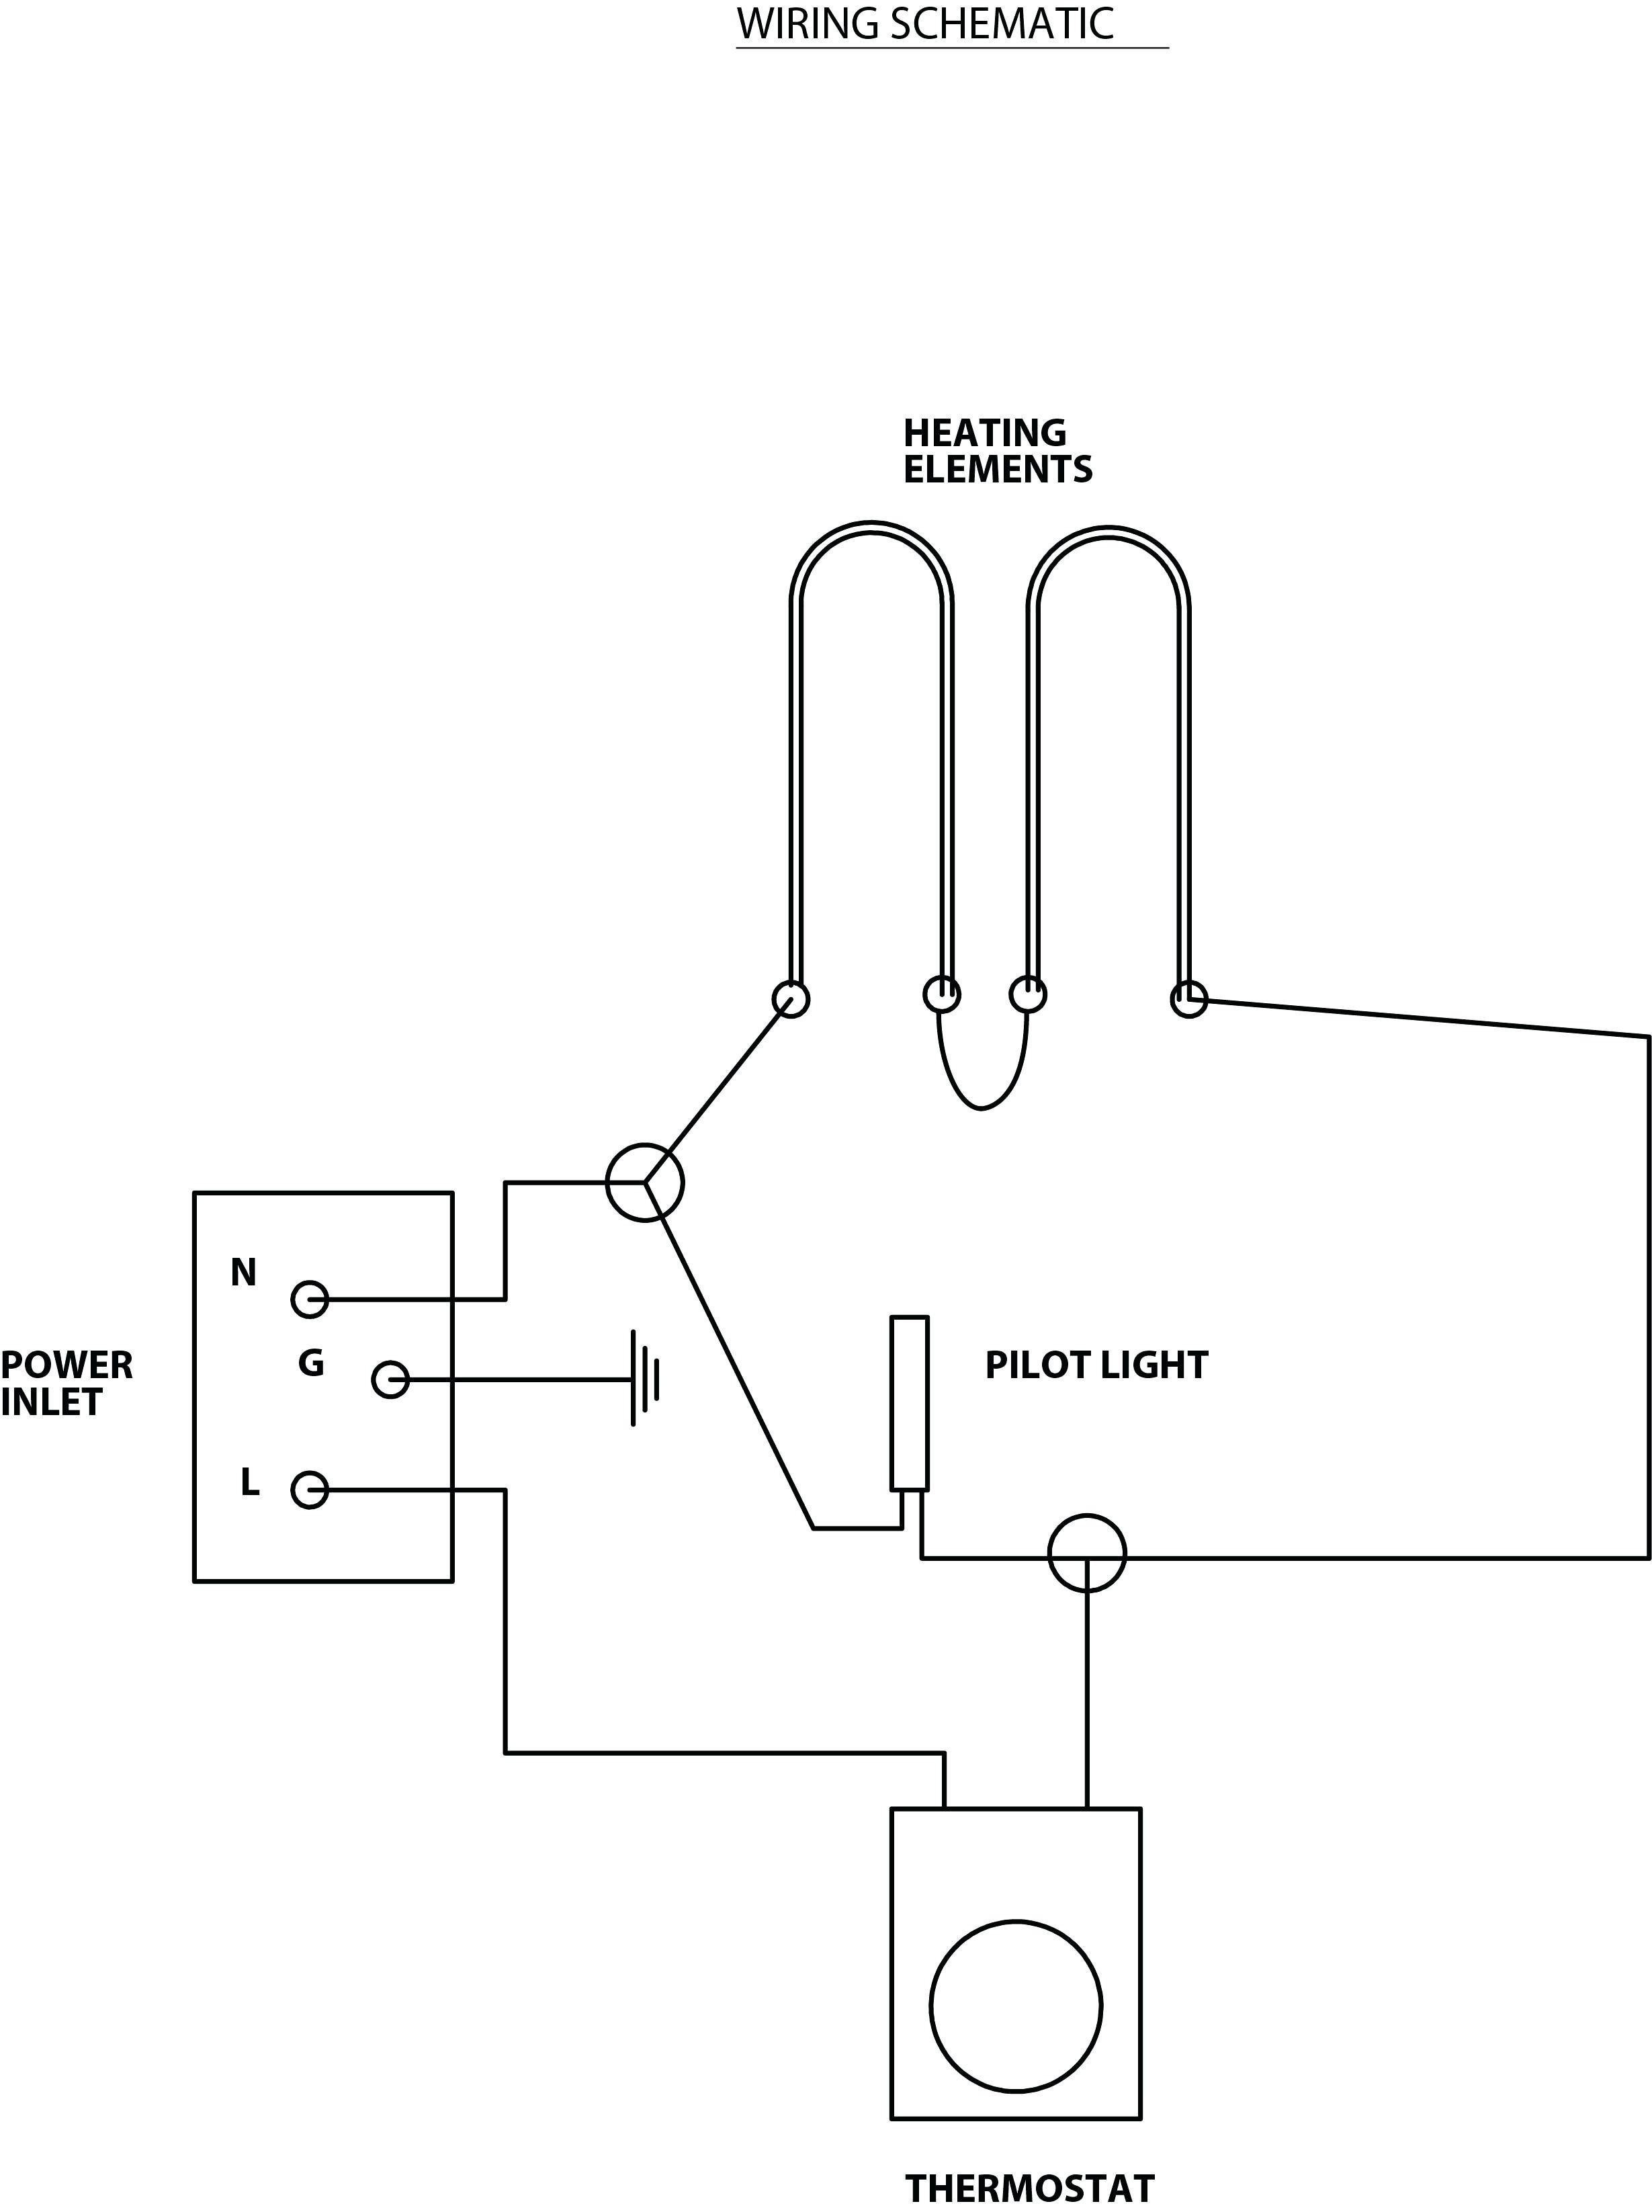 Thermostat Wiring Diagram